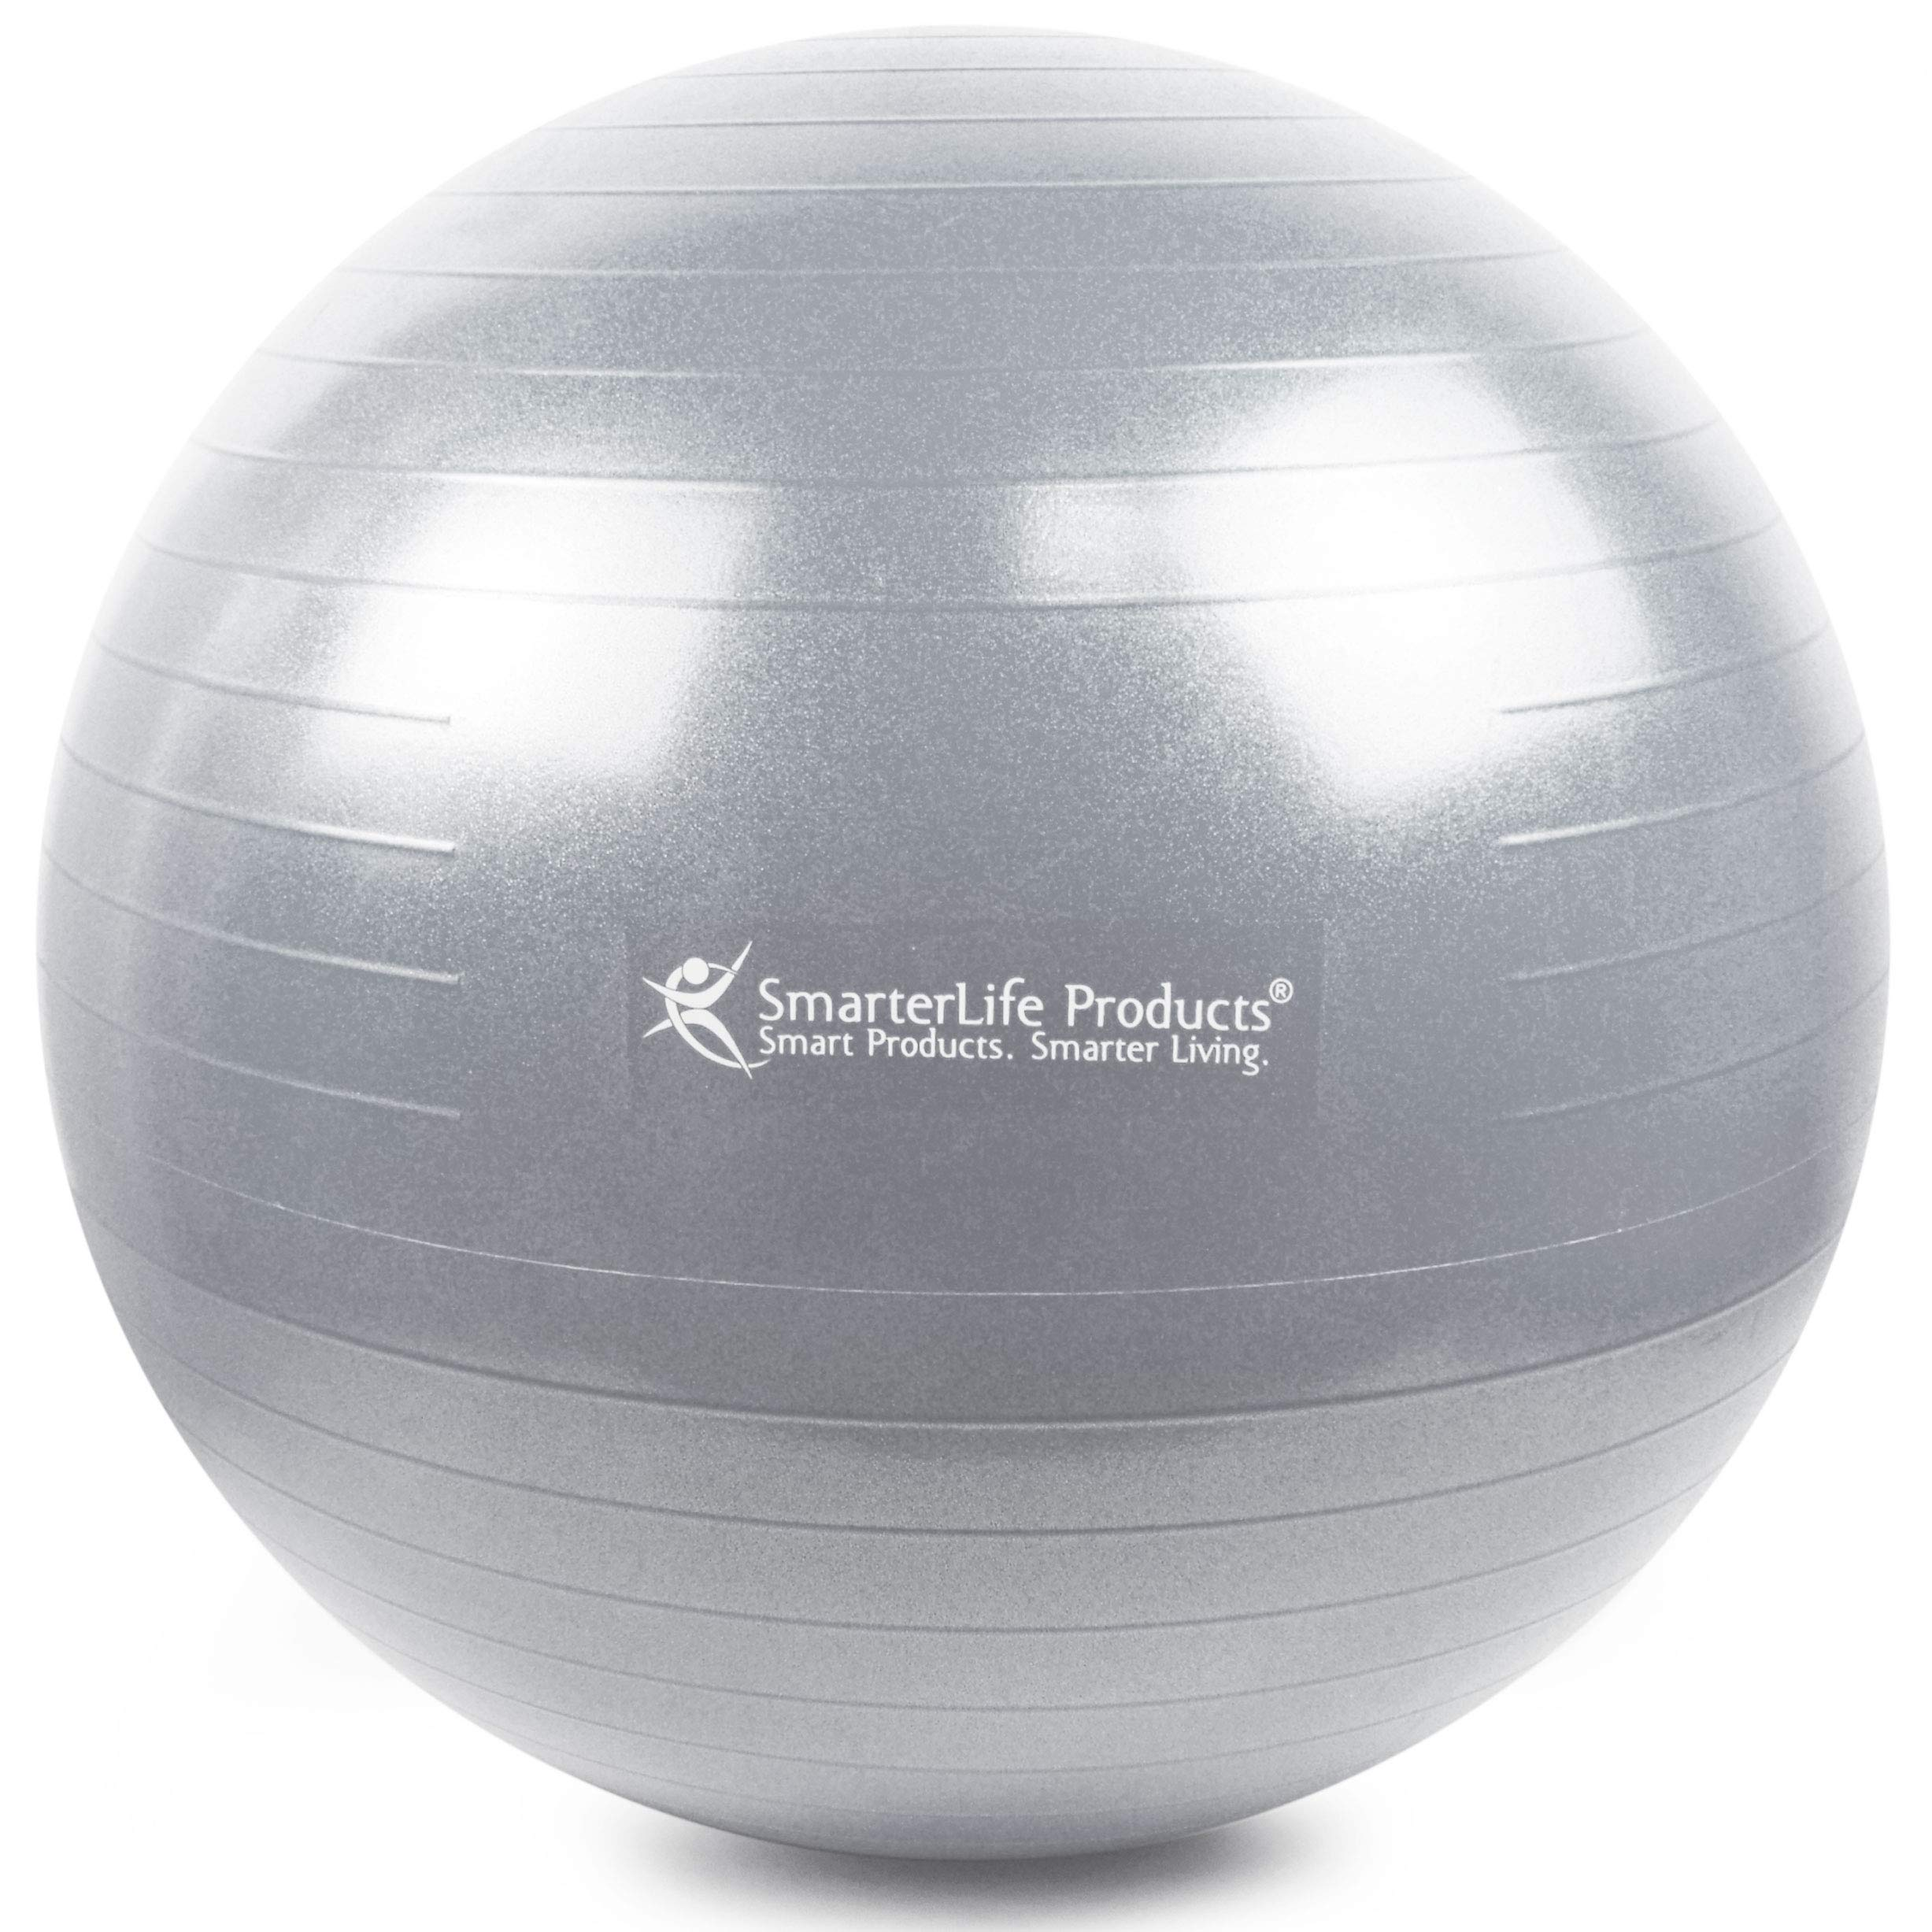 Exercise Ball for Yoga, Balance, Stability from SmarterLife - Fitness, Pilates, Birthing, Therapy, Office Ball Chair, Classroom Flexible Seating - Anti Burst, Non Slip + Workout Guide (Silver, 65cm) by SmarterLife Products (Image #2)